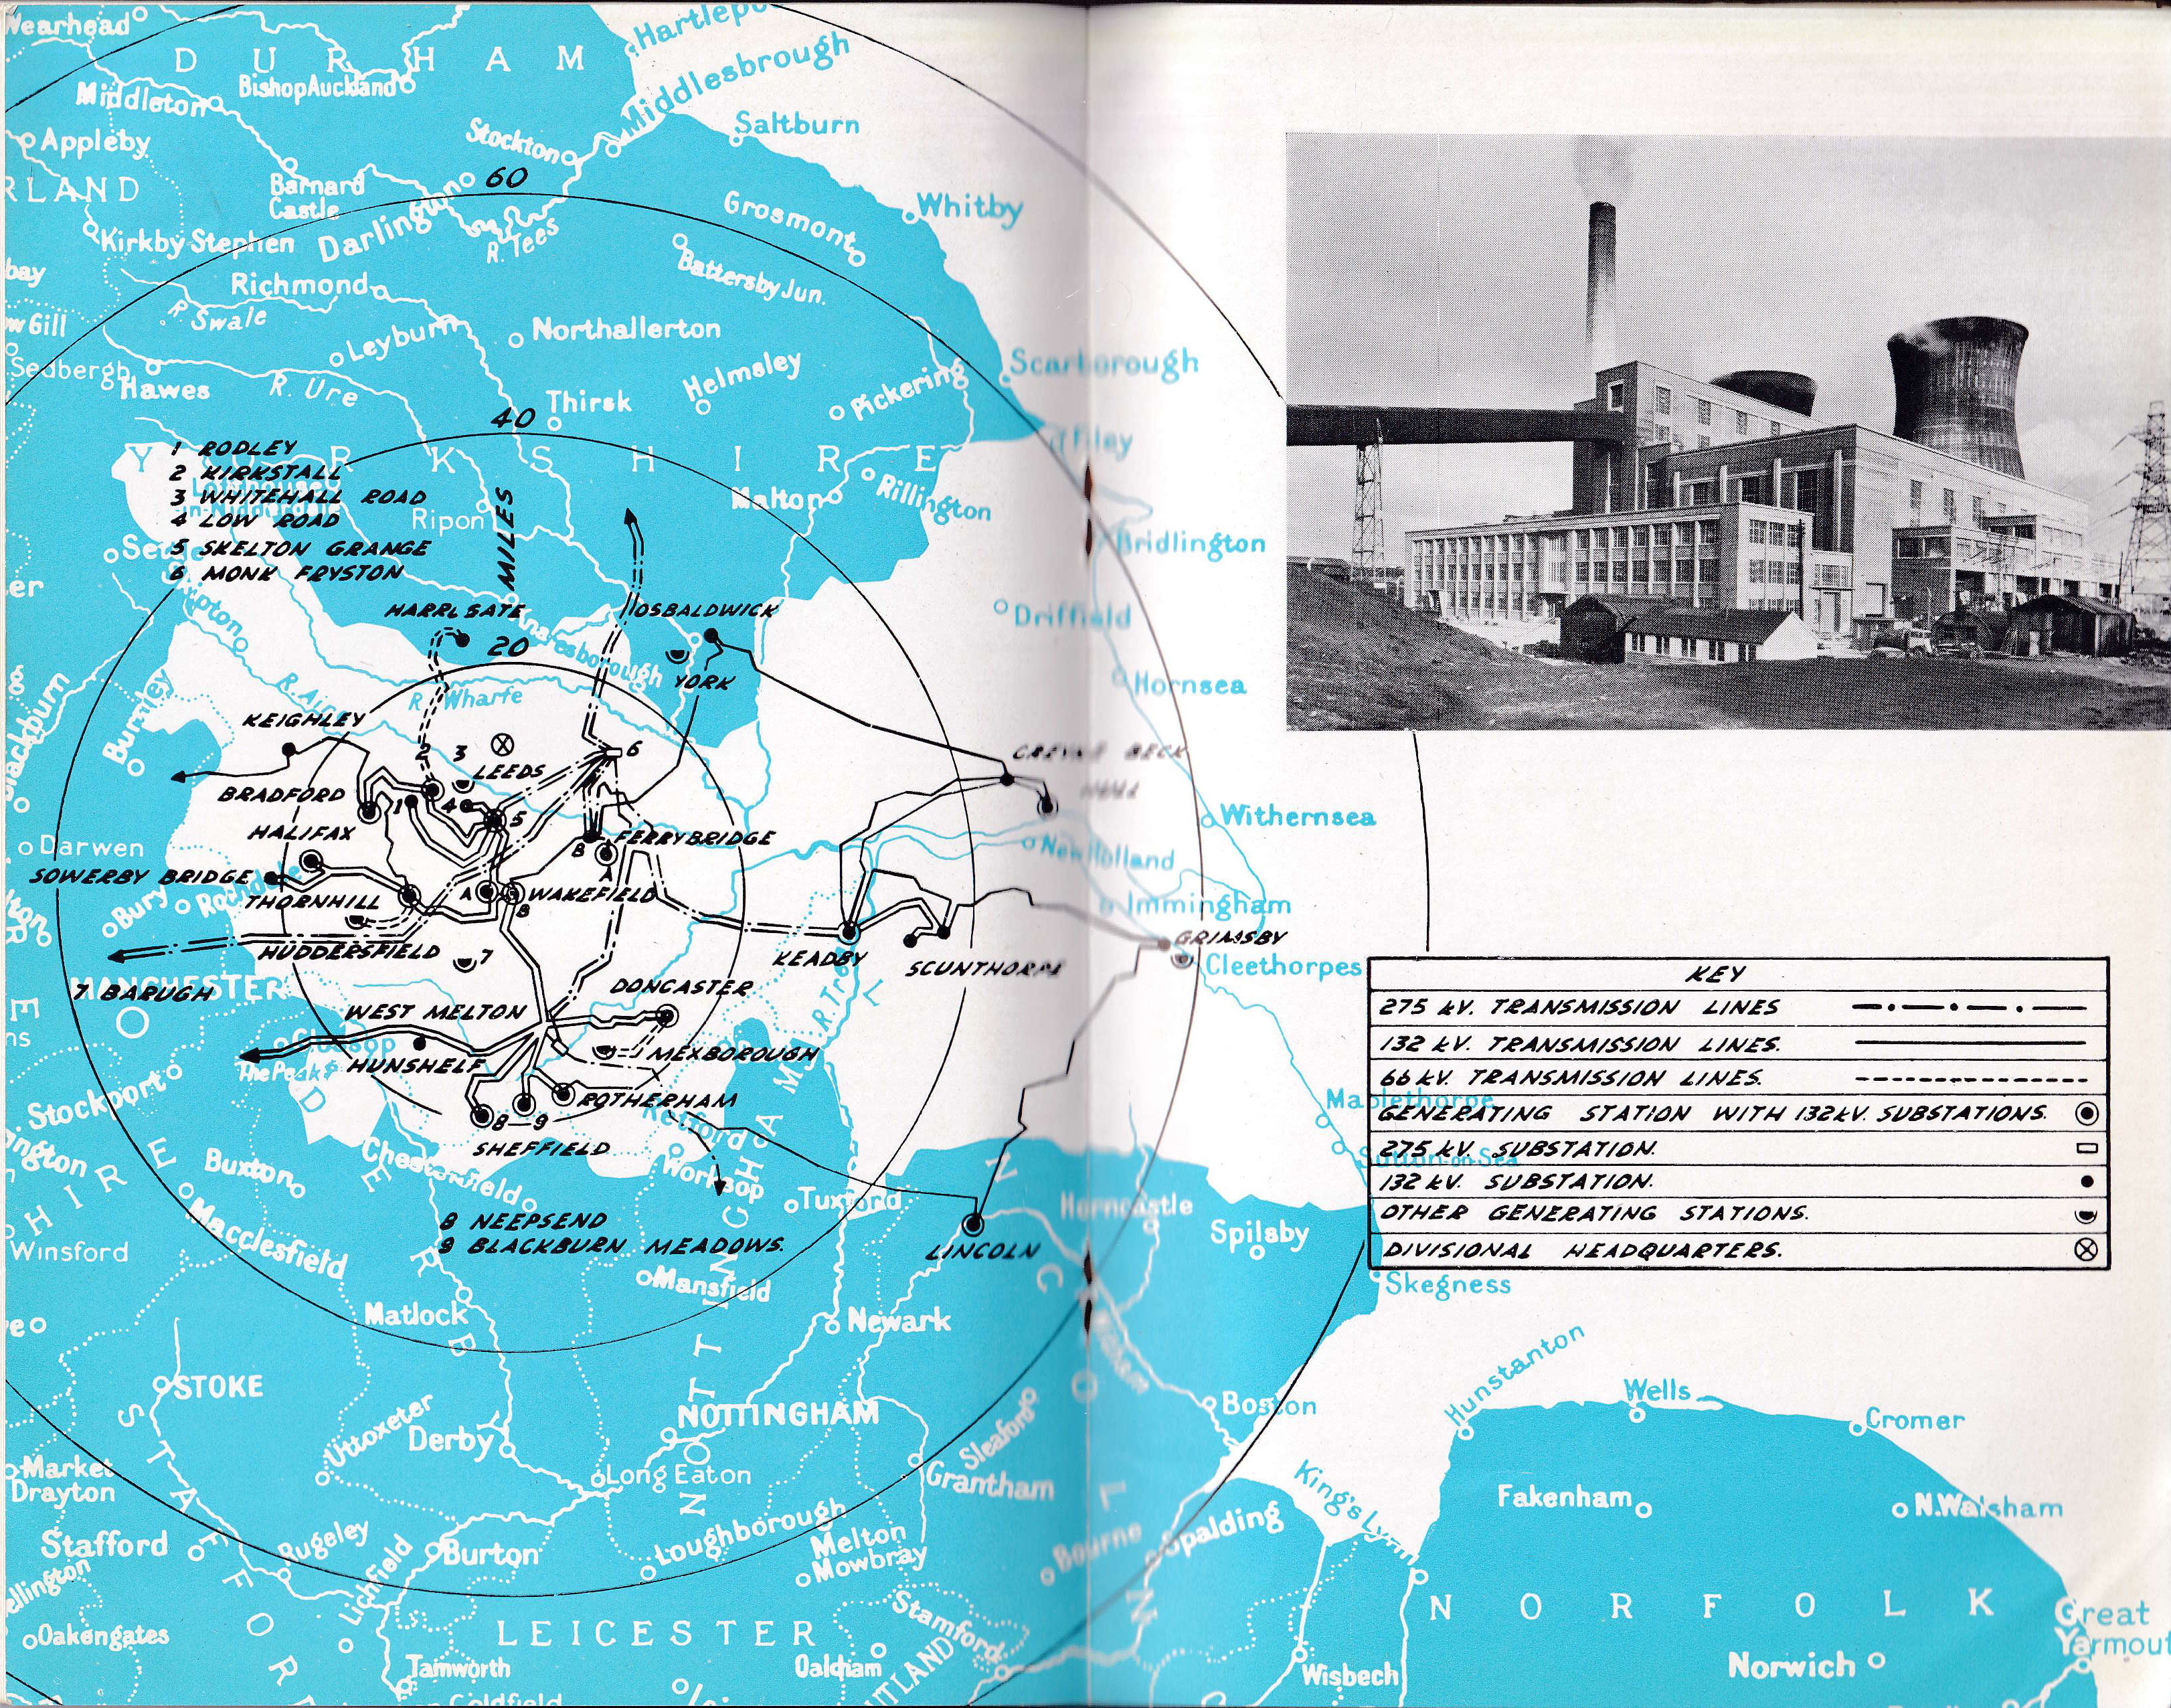 Map Of Uk Power Stations.City Fields Dreaming Streaming Regional Power Stations